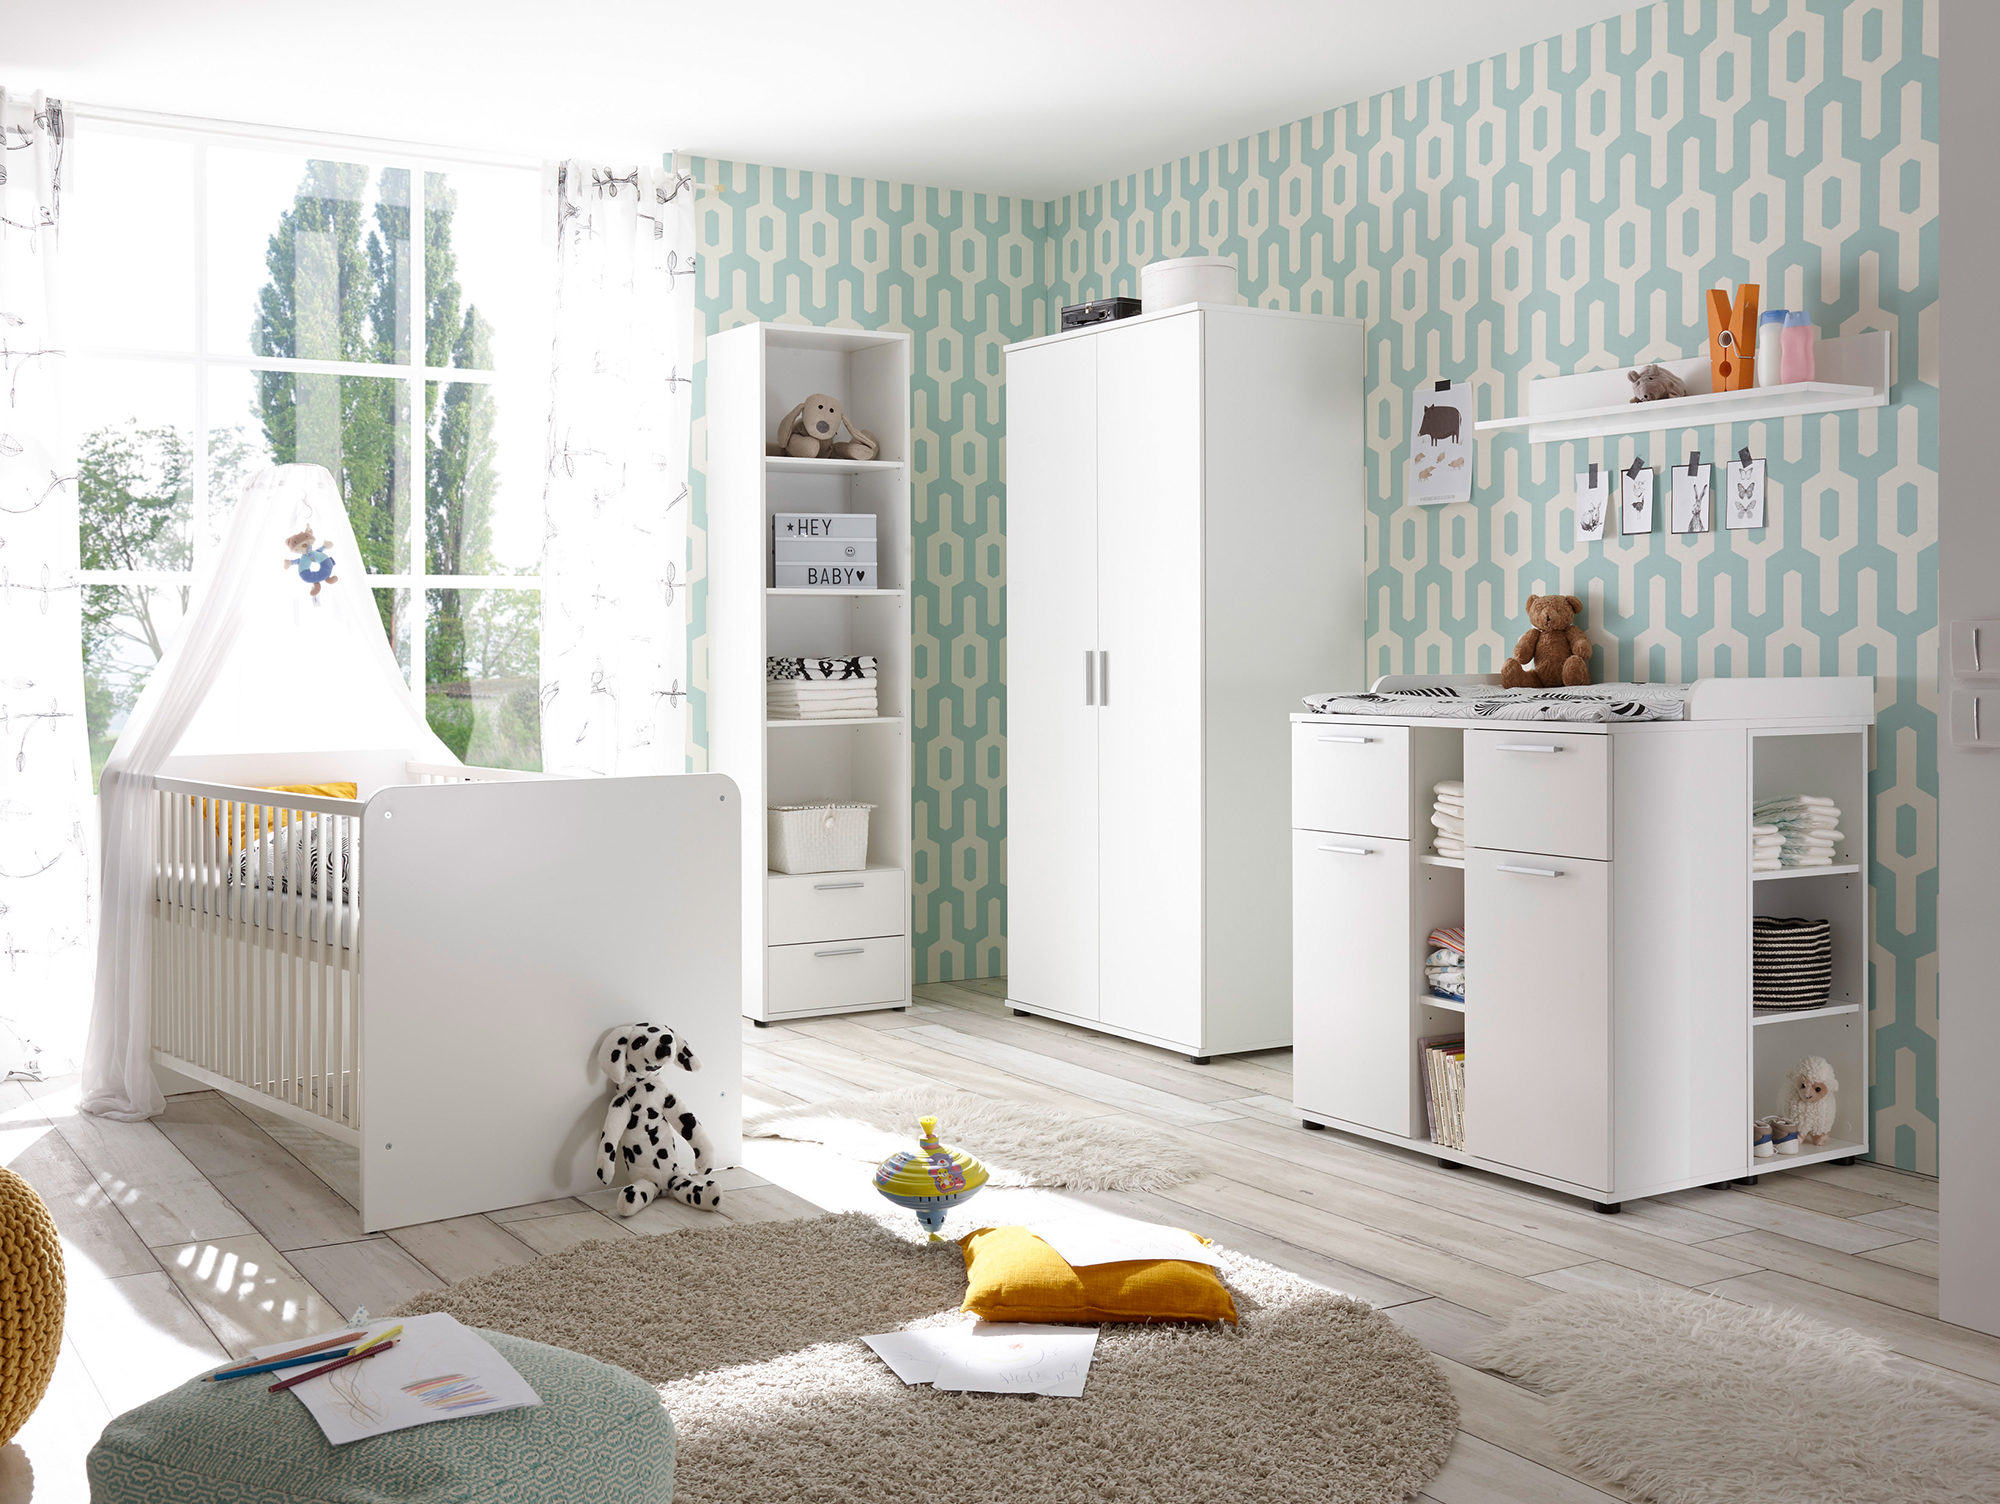 bambino komplett babyzimmer 5 teilig material dekorspanplatte weiss. Black Bedroom Furniture Sets. Home Design Ideas